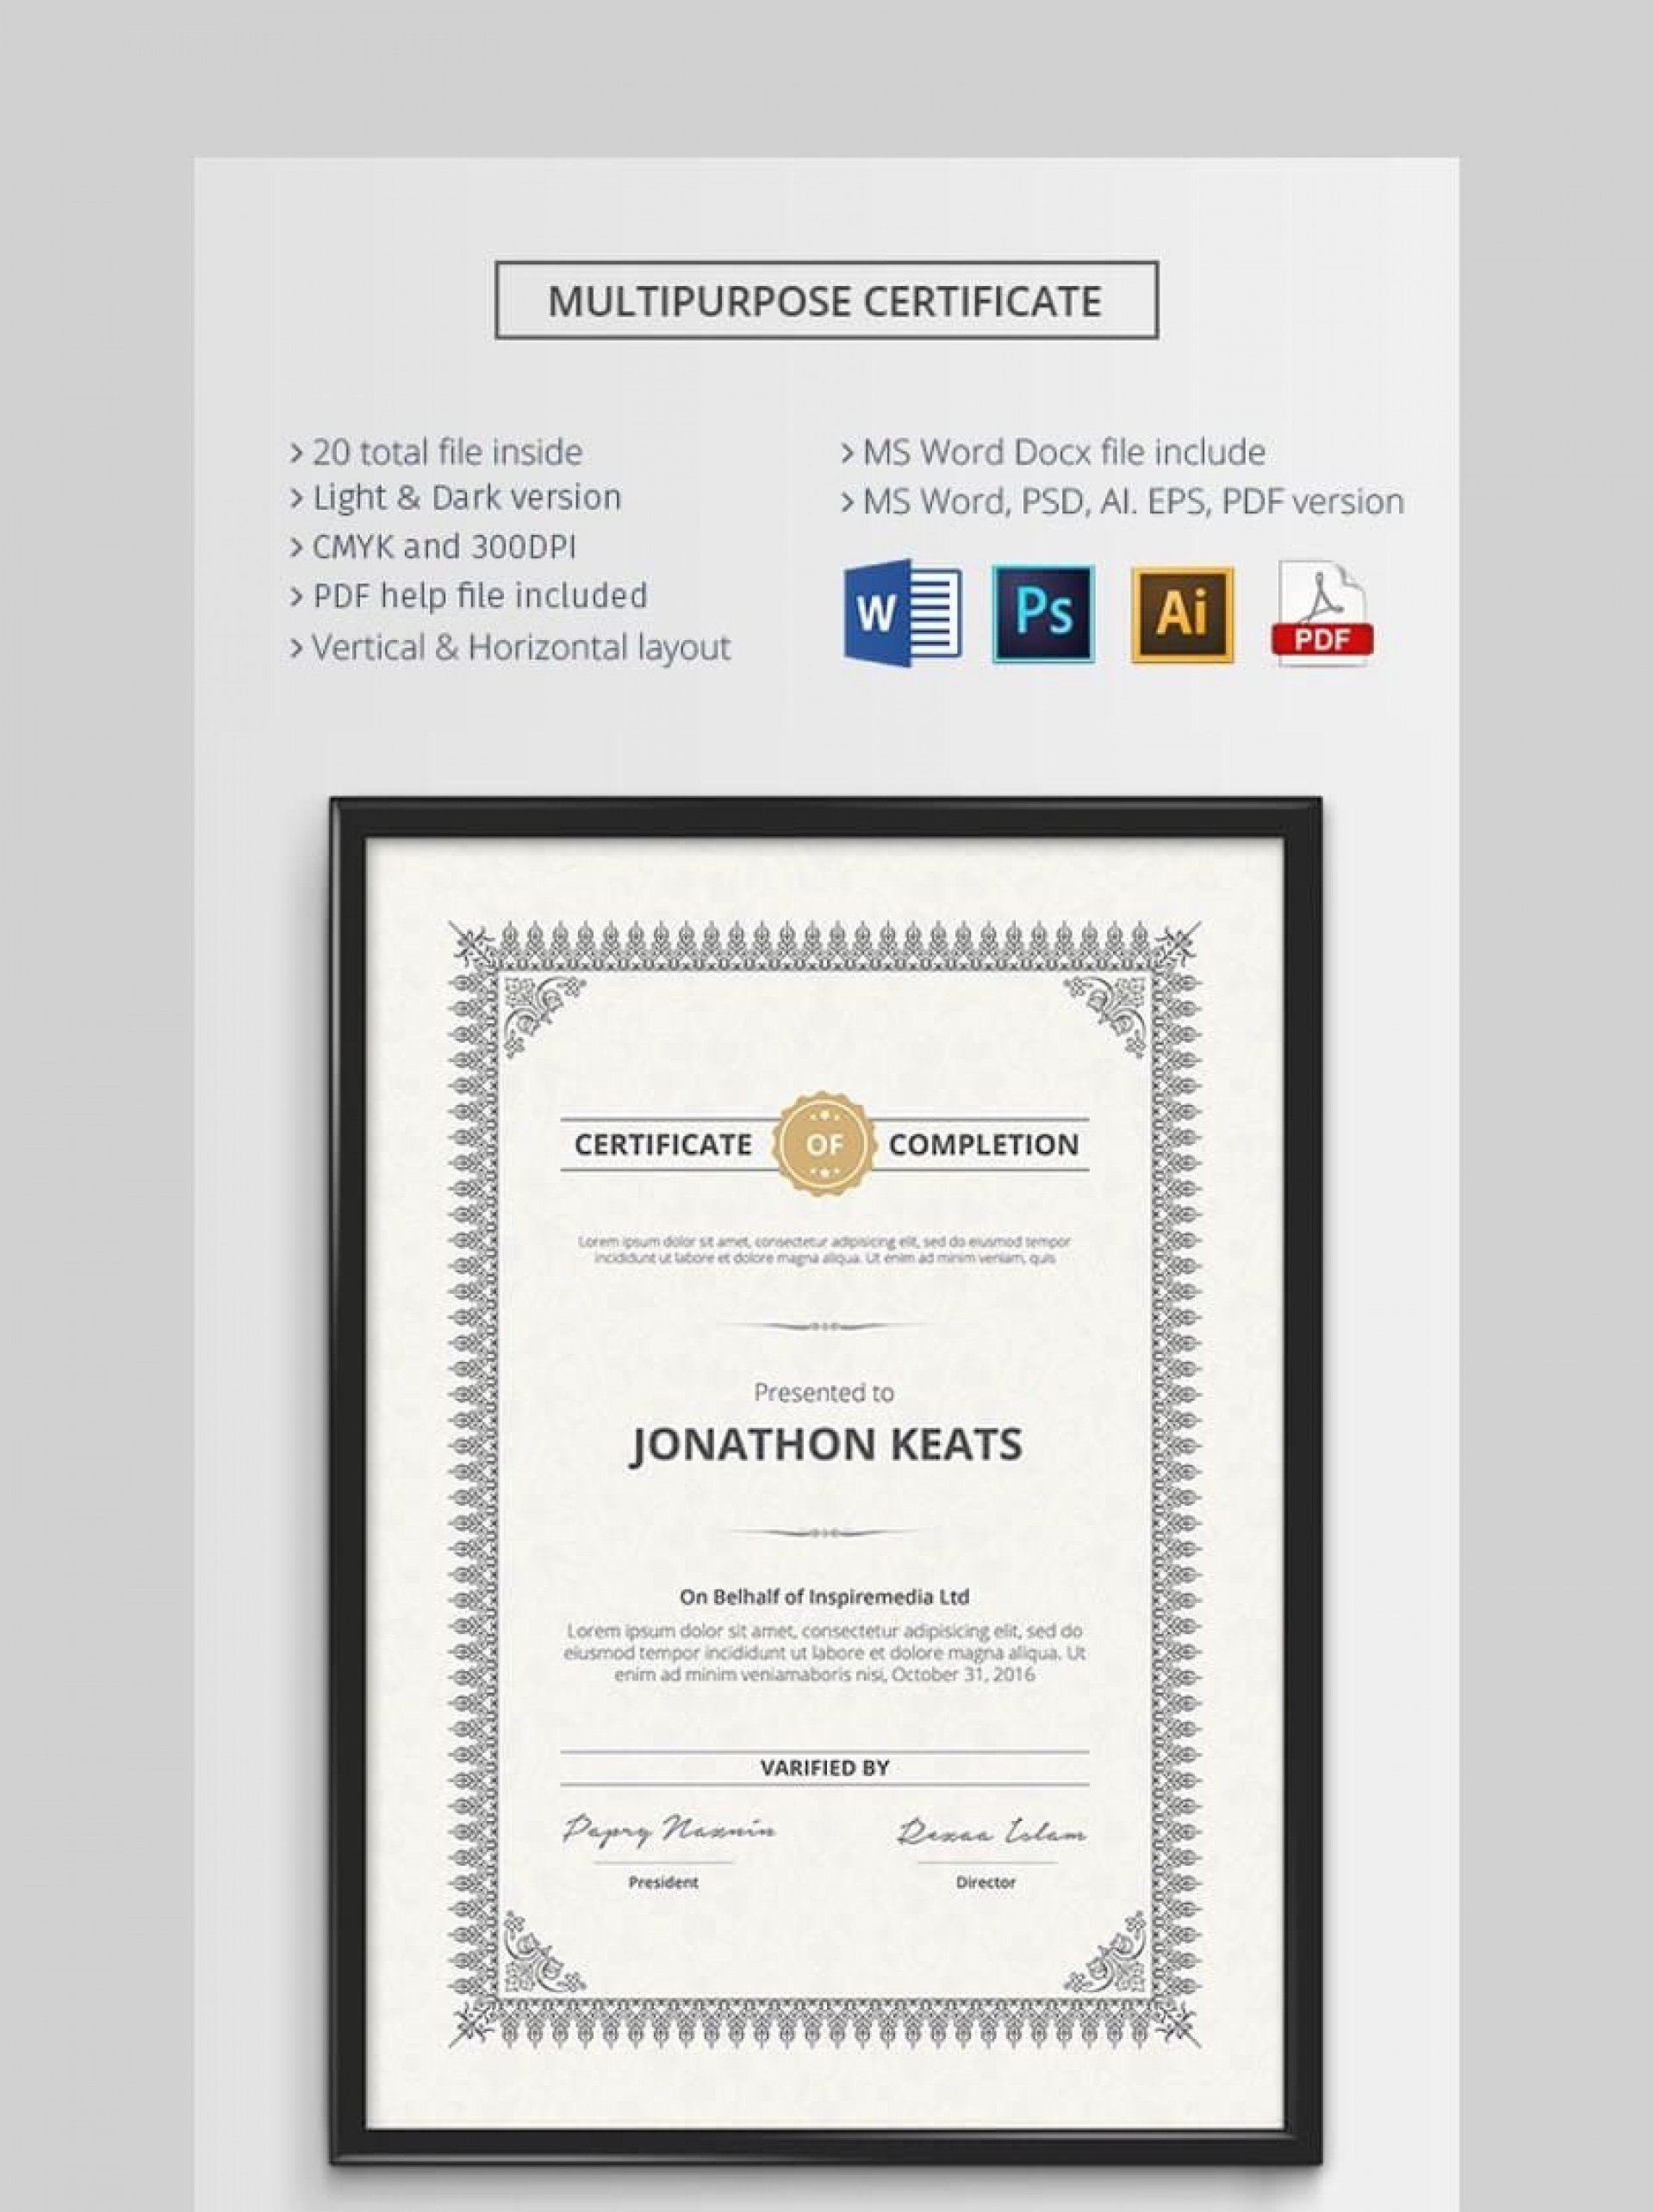 000 Top Free Certificate Template Microsoft Word Image  Of Authenticity Art Puppy Birth Marriage1920